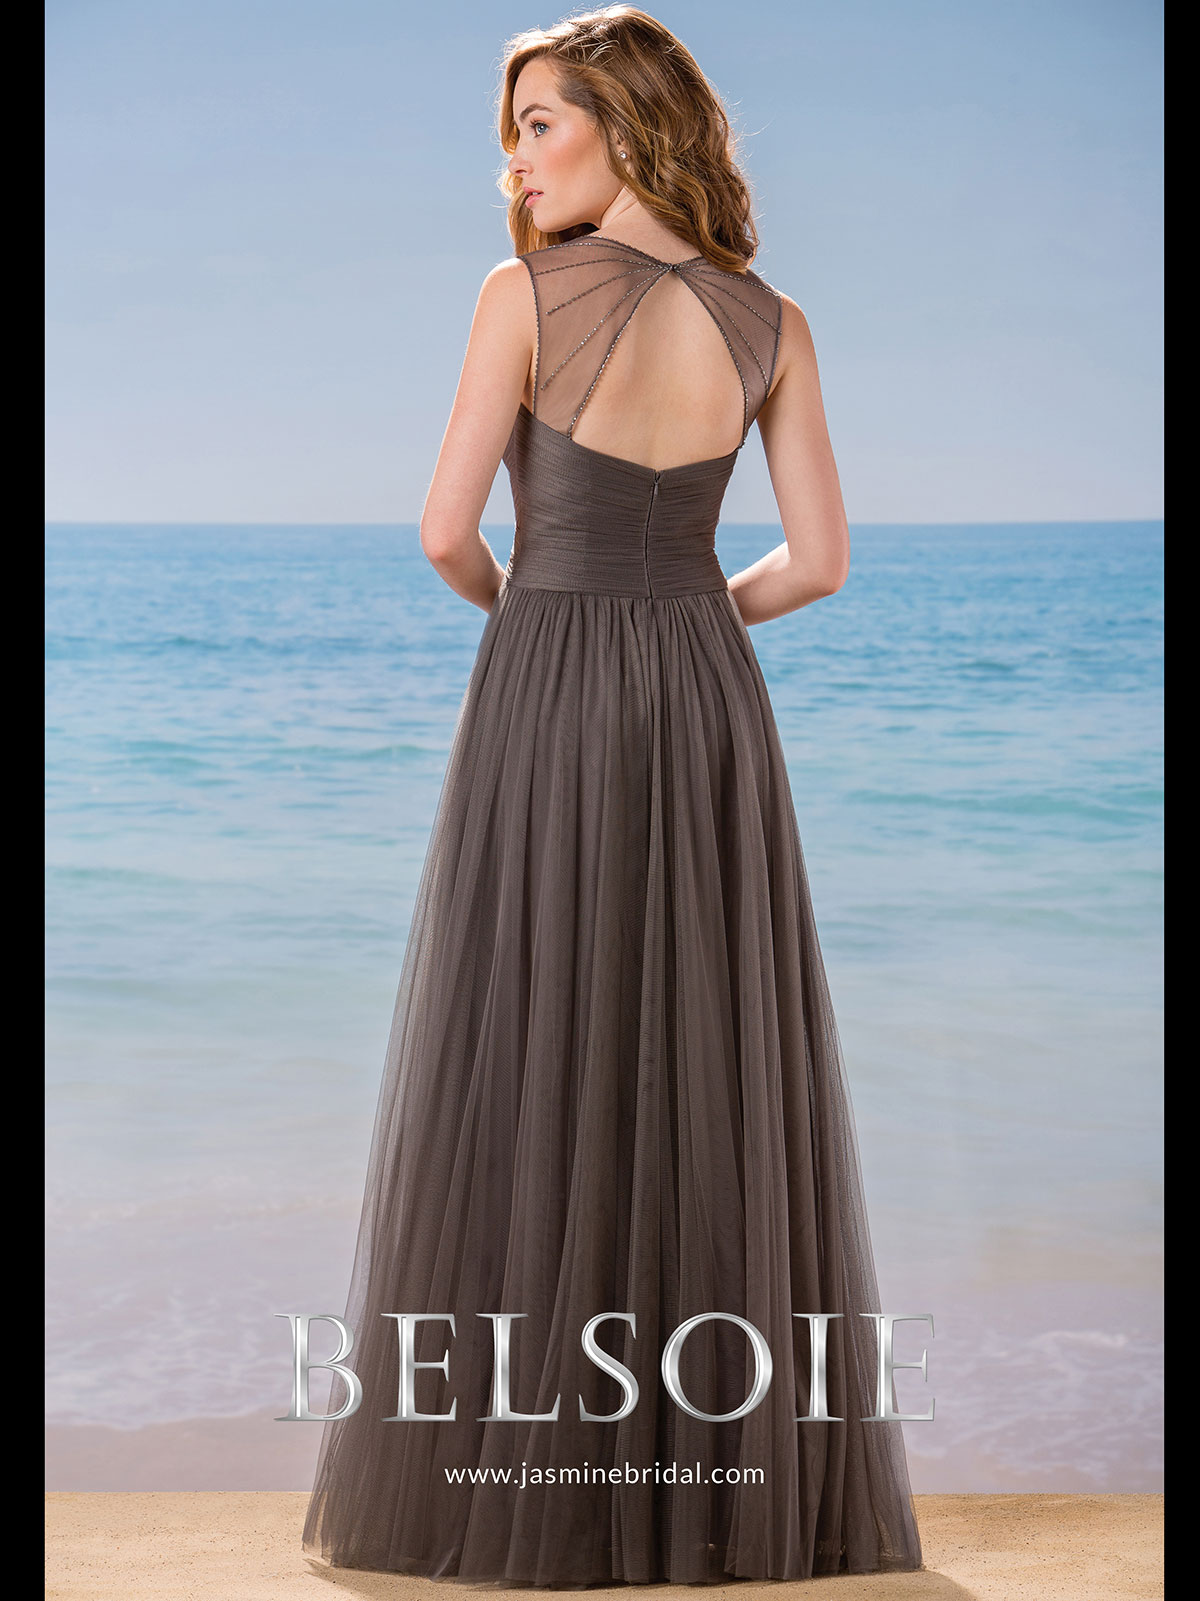 Belsoie l184002 sweetheart soft tulle a line bridesmaid dress soft tulle a line belsoie bridesmaid dress l184002 ombrellifo Choice Image